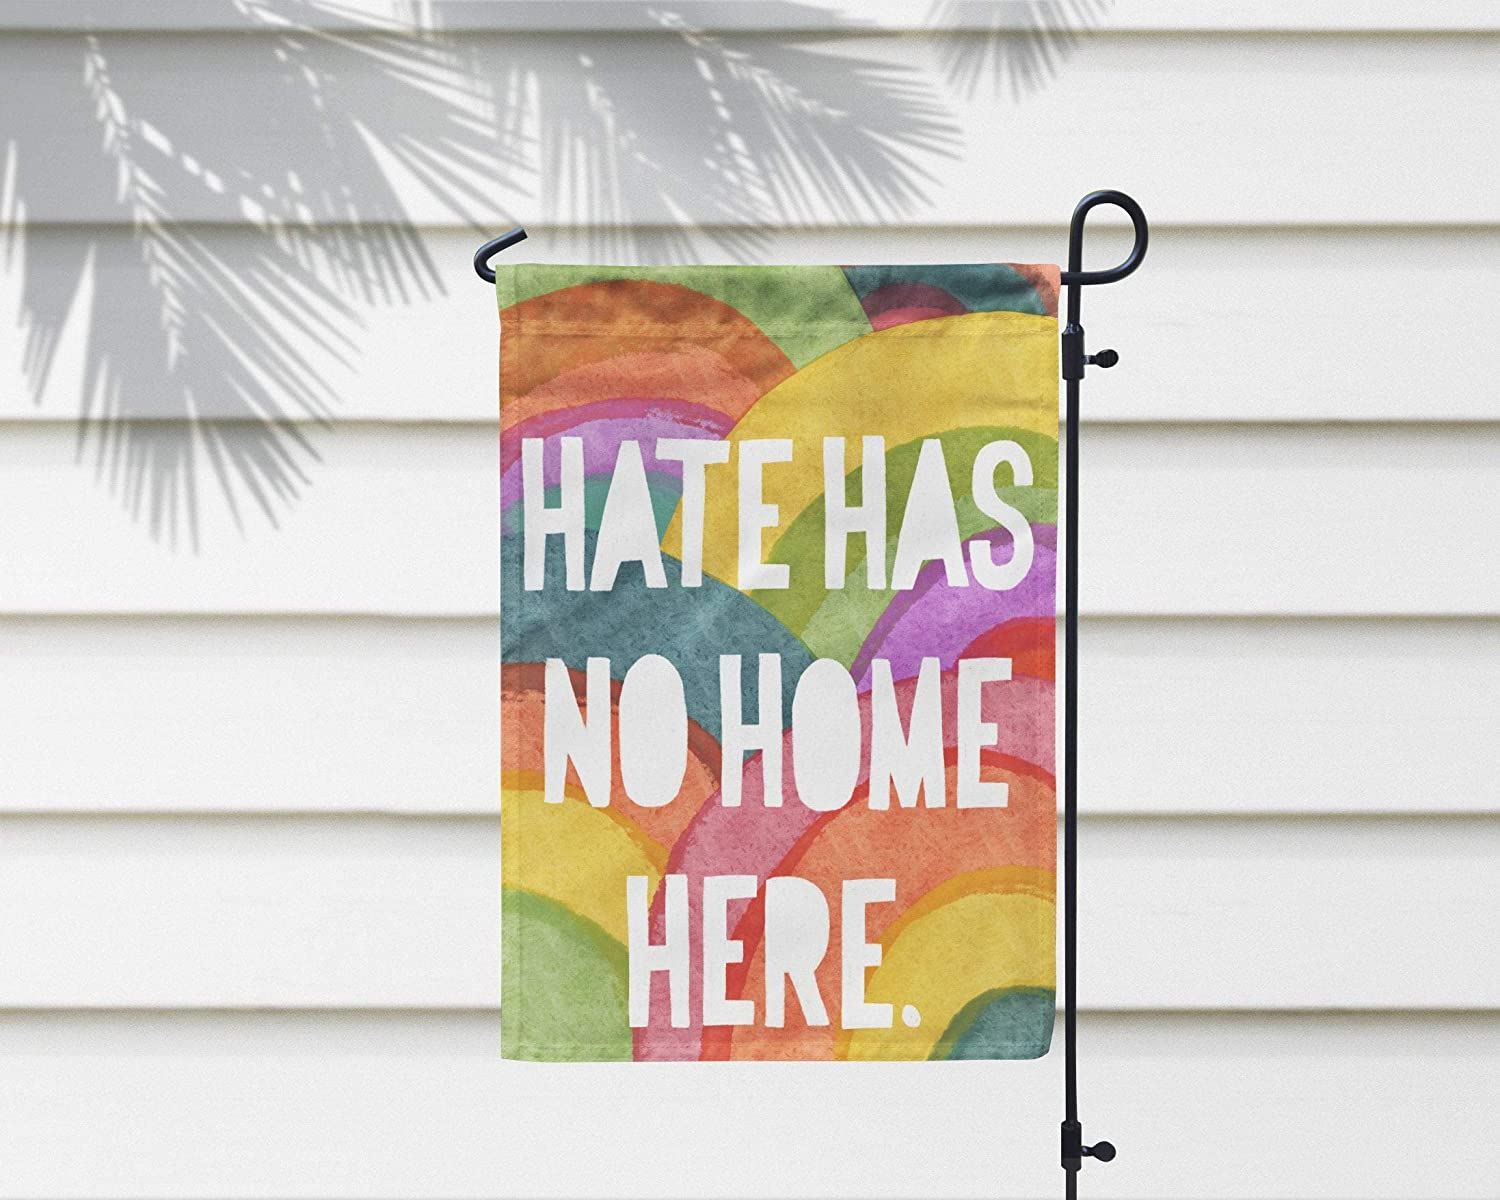 Cheyan Hate Has No Home Here Colorful Rainbow Garden Flag, Outdoor Decorative House Flag Promoting Peace, Equality, Diversity, Anti-Racism